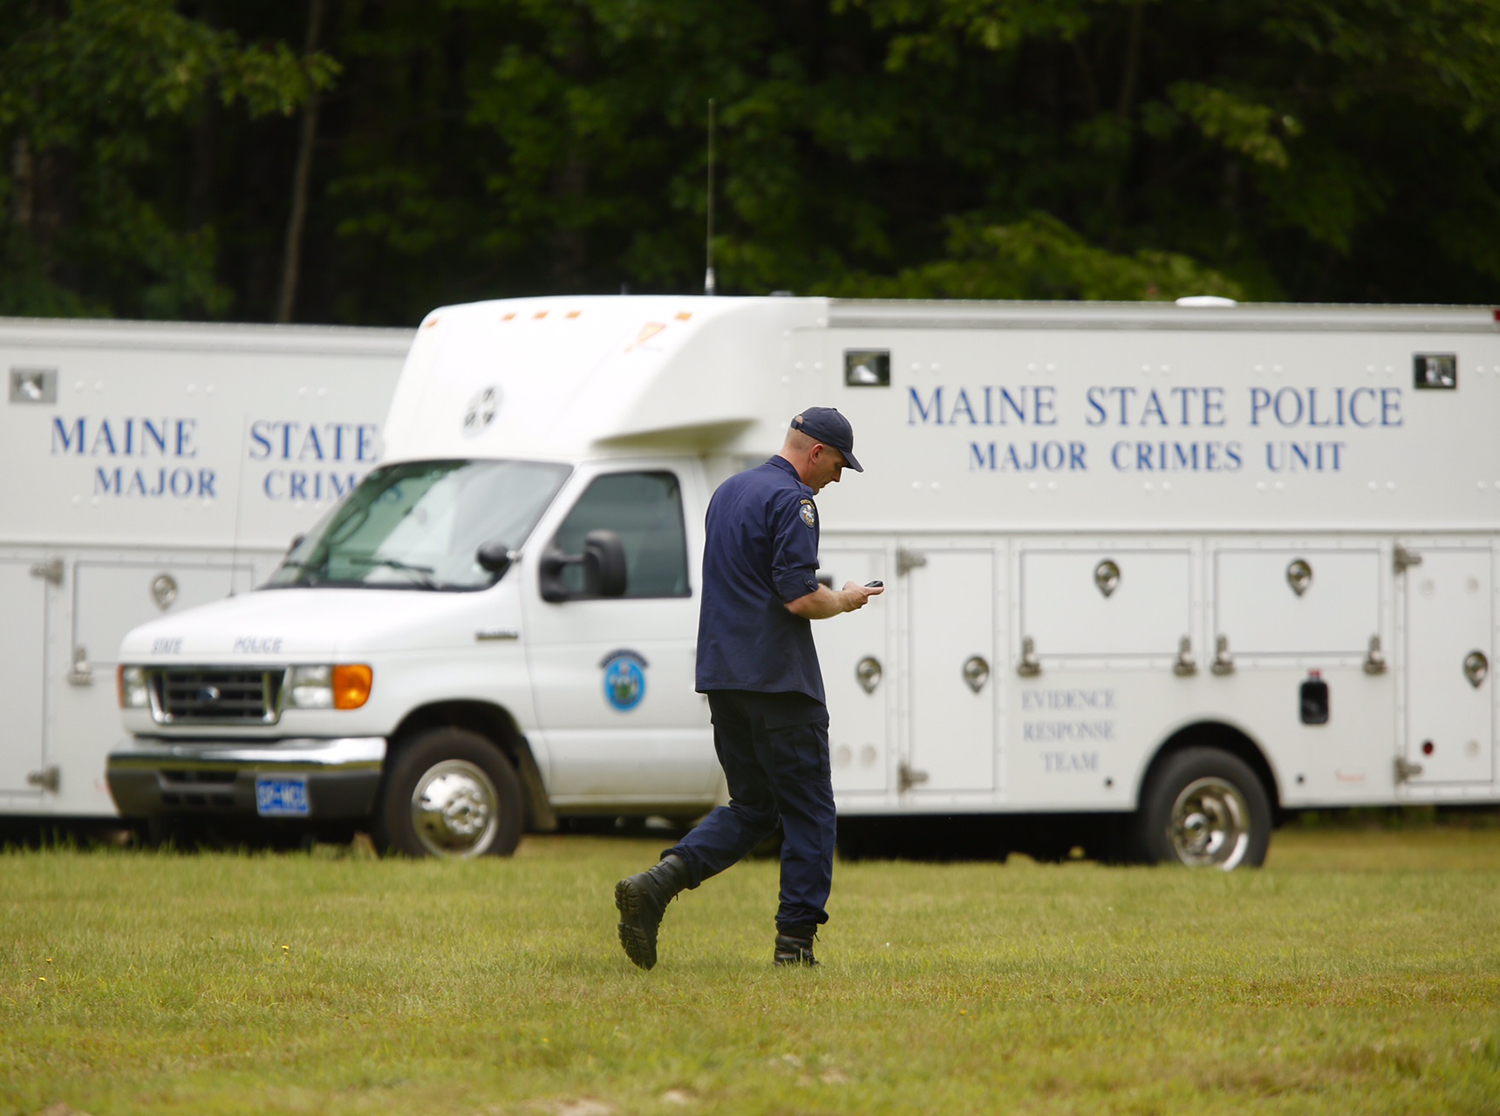 A Maine law enforcement investigator walks at the scene where a search for clues into what happened Kimberly Moreau. Carl D. Walsh/Staff Photographer